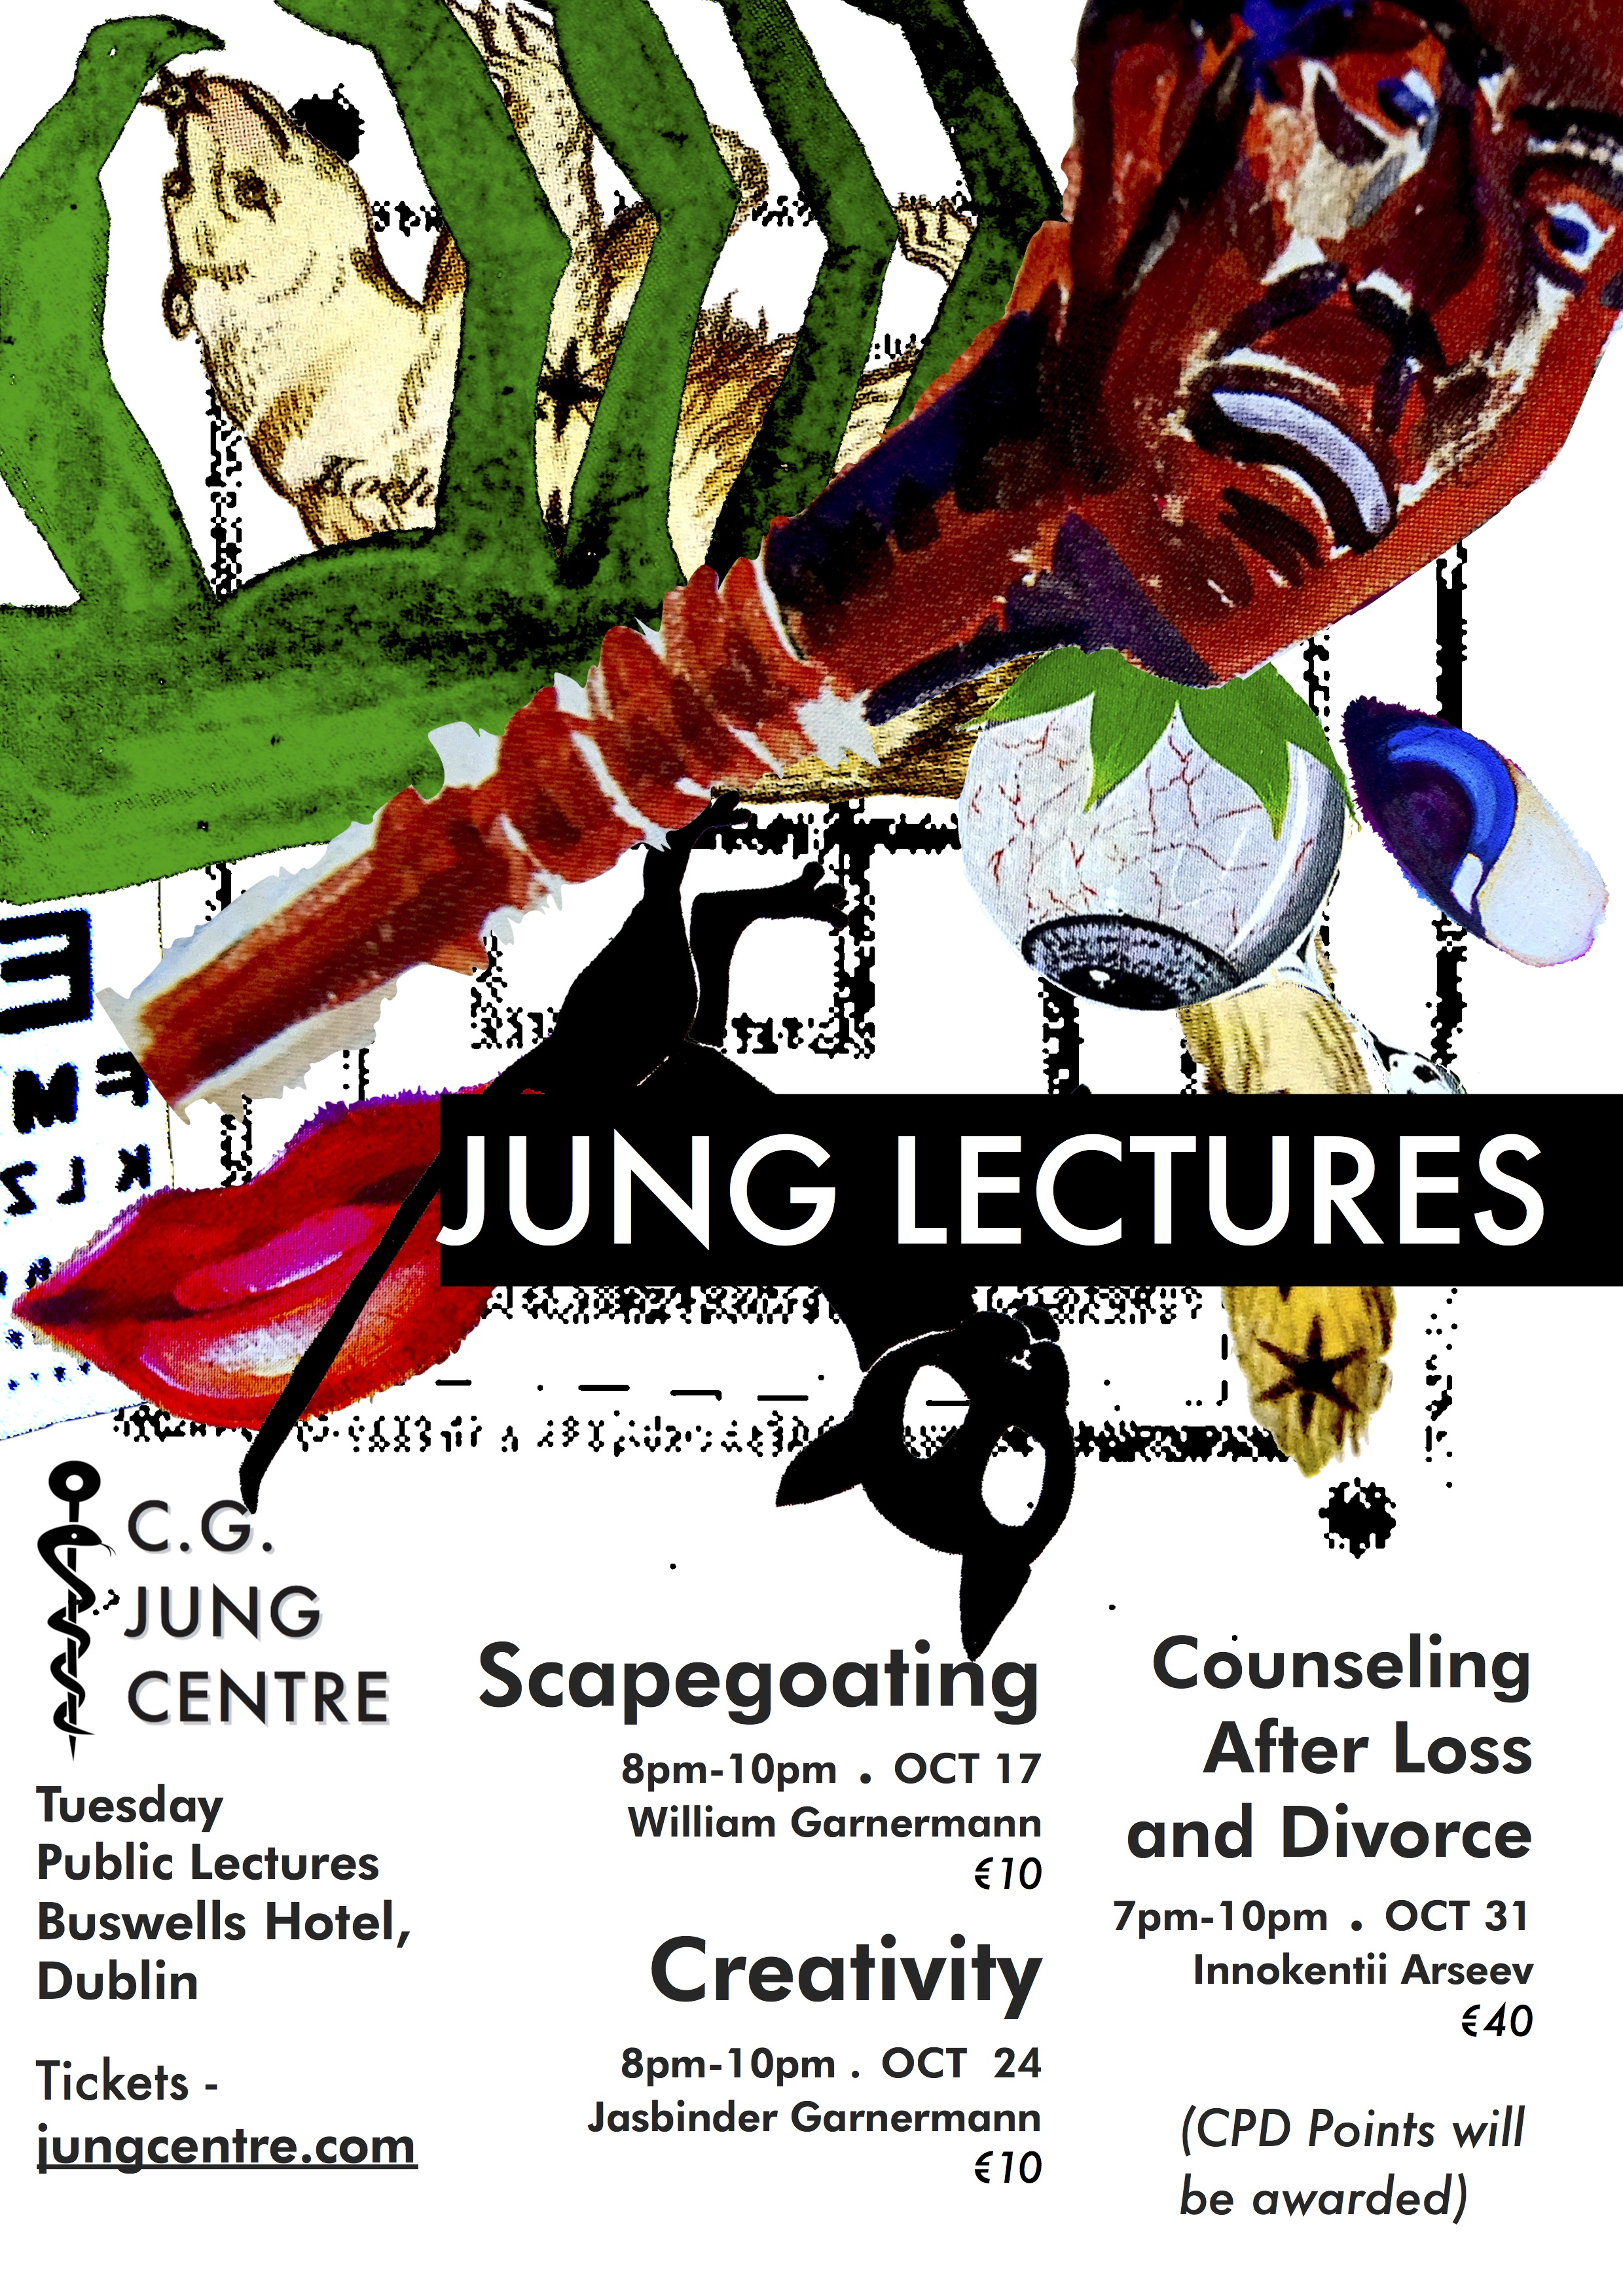 JUNG LECTURES FALL 2017.jpg